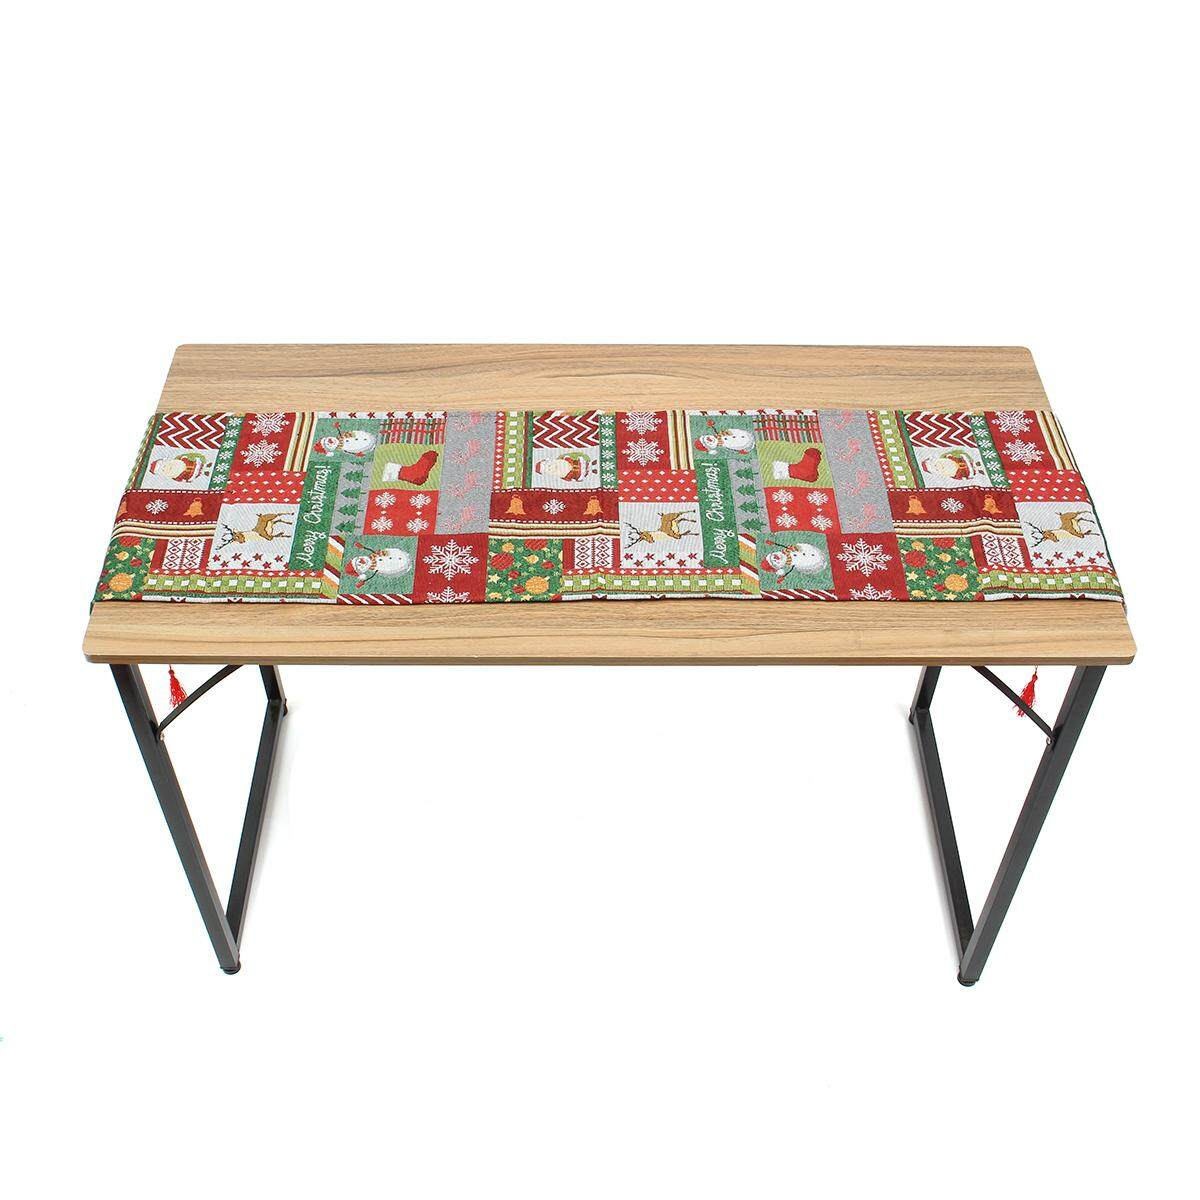 Christmas Table Runner Placemat Xmas Party Home Desk Decor Tablecloth Cover # Table Runner